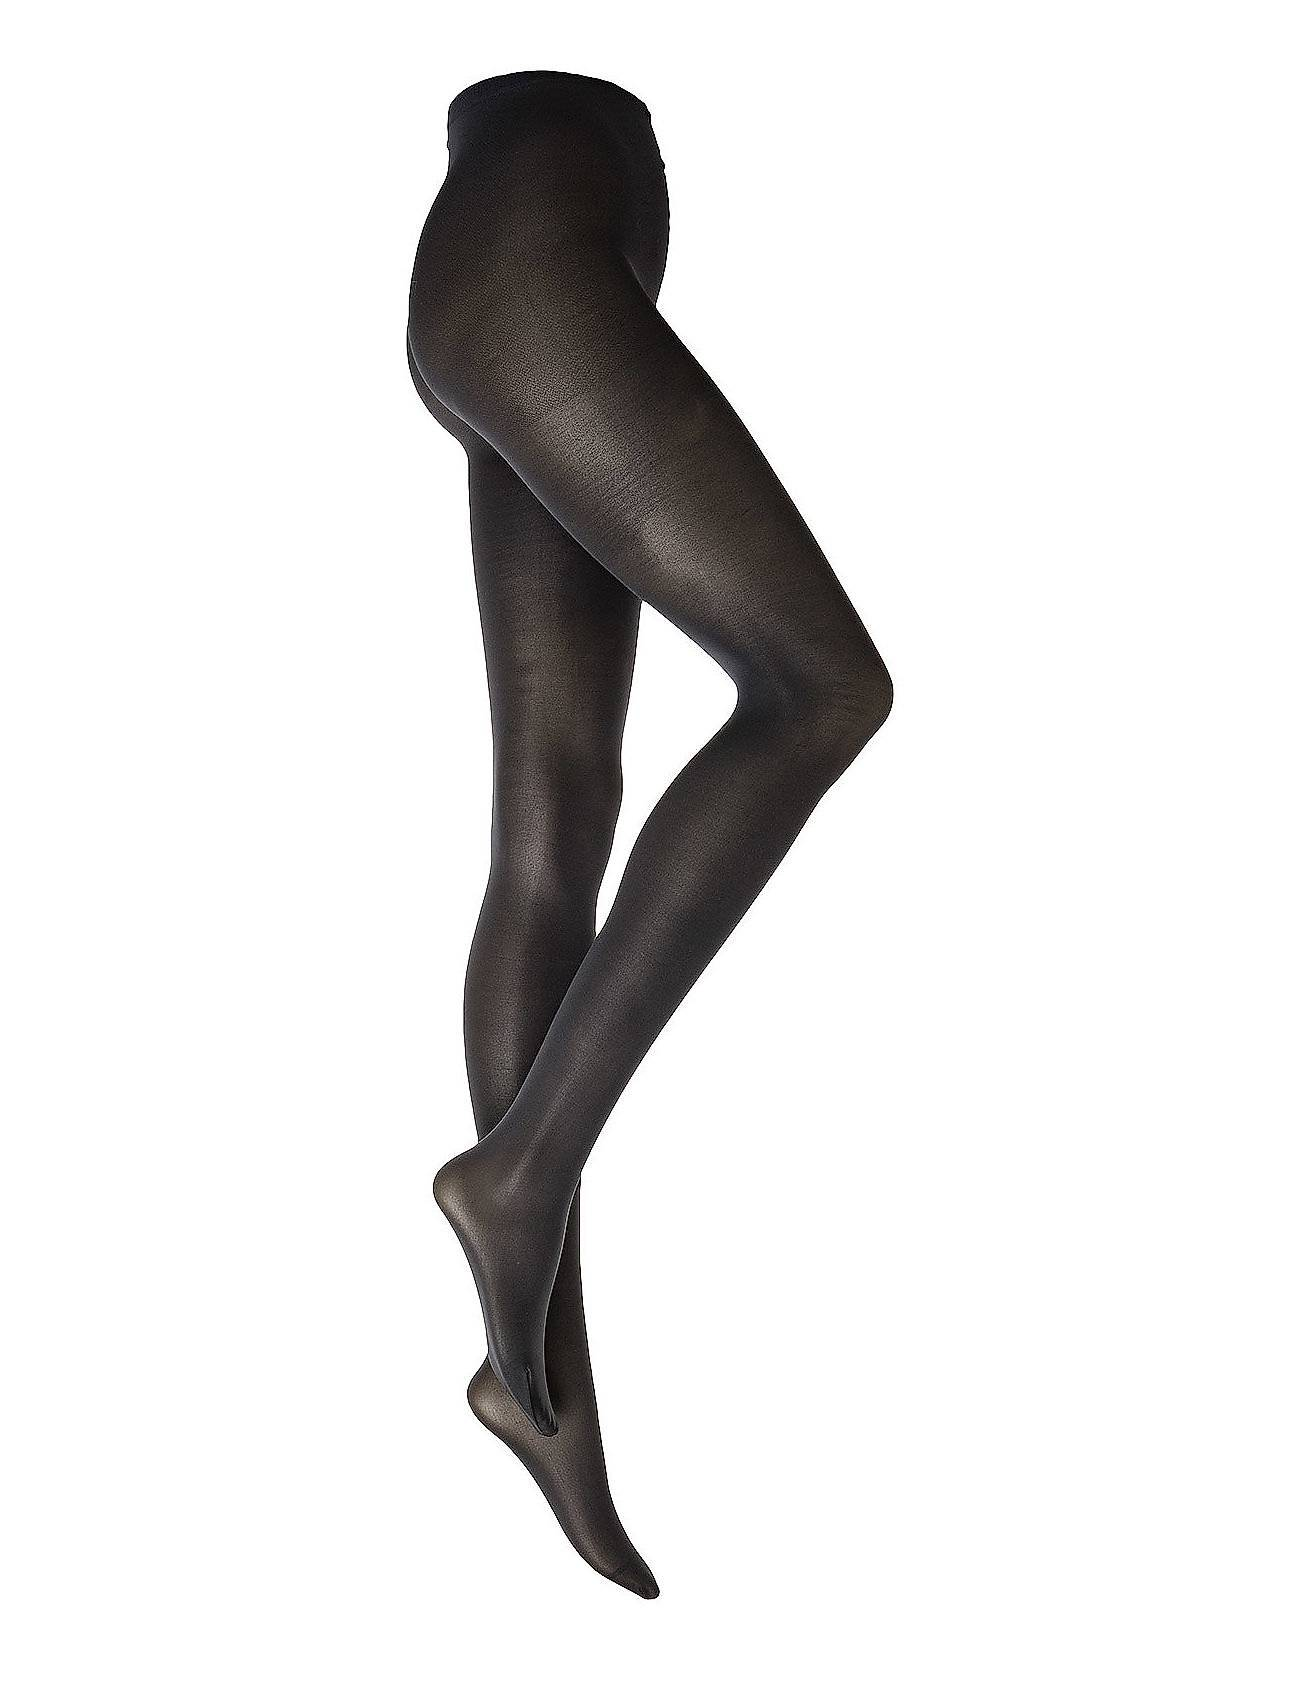 Vogue Ladies Den Pantyhose, Opaque 40 Den